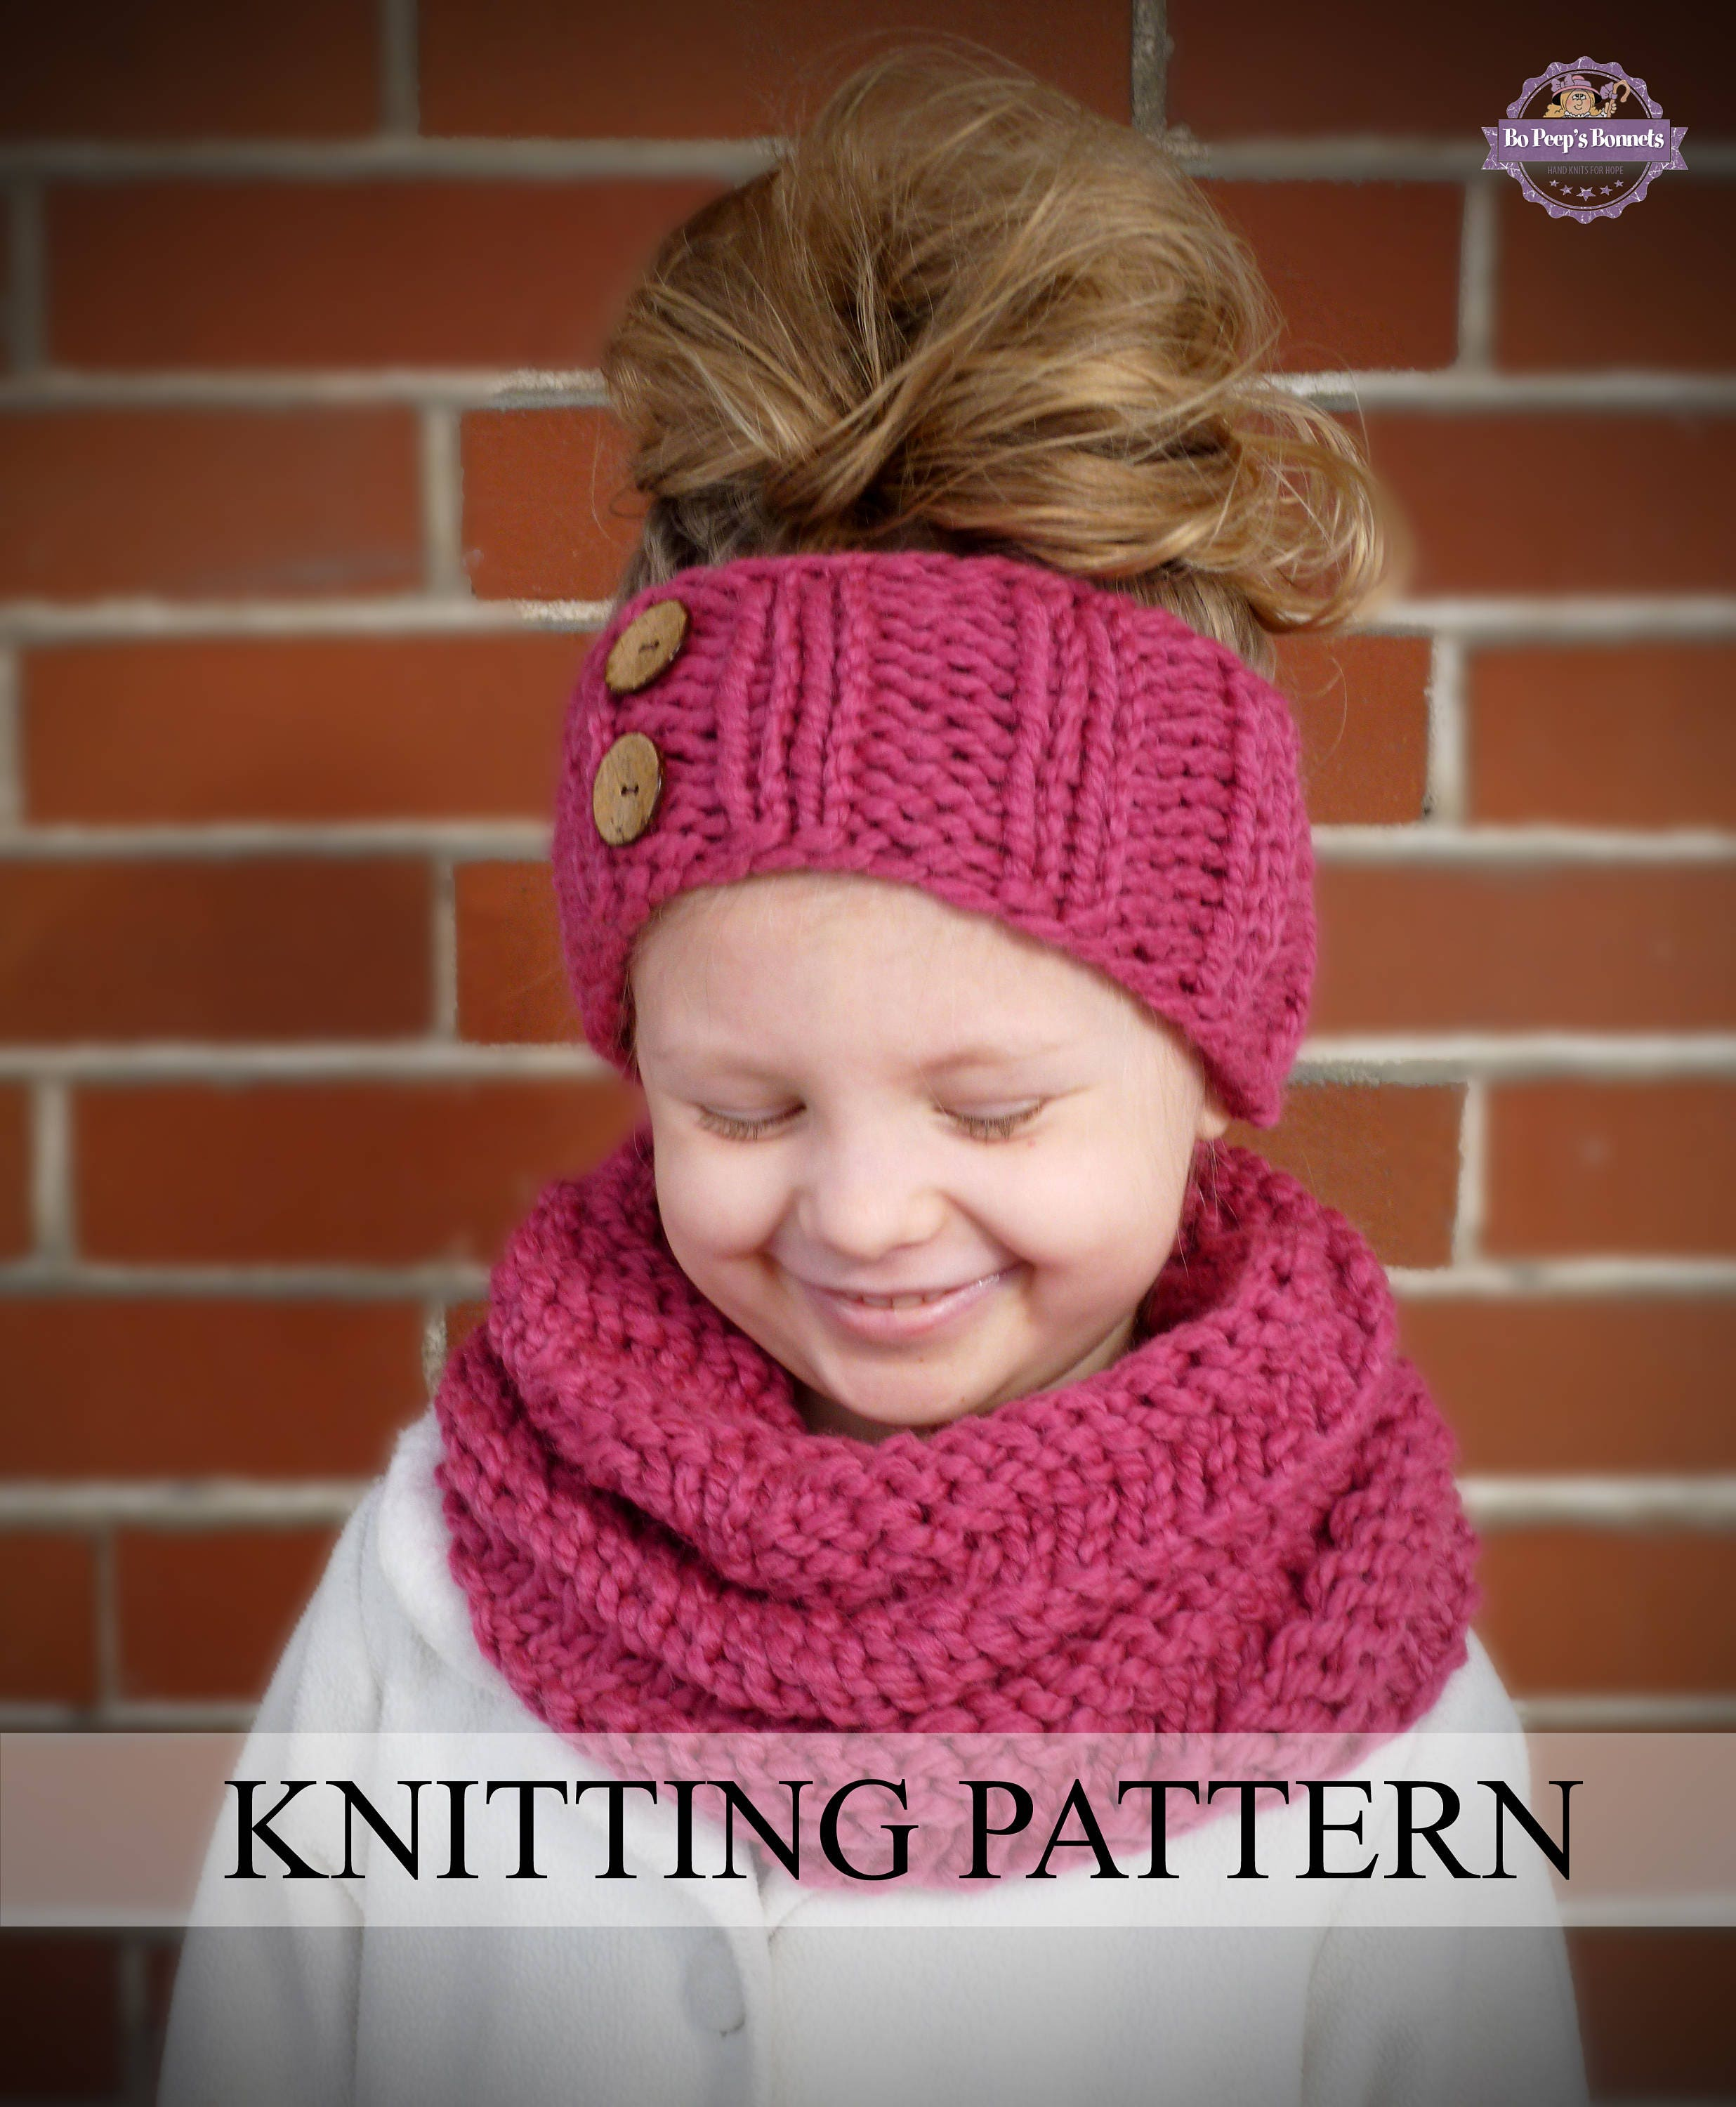 Knitting Pattern Spiral Scarf : INSTANT DOWNLOAD Knitting PATTERN Spiral Cowl and Headband